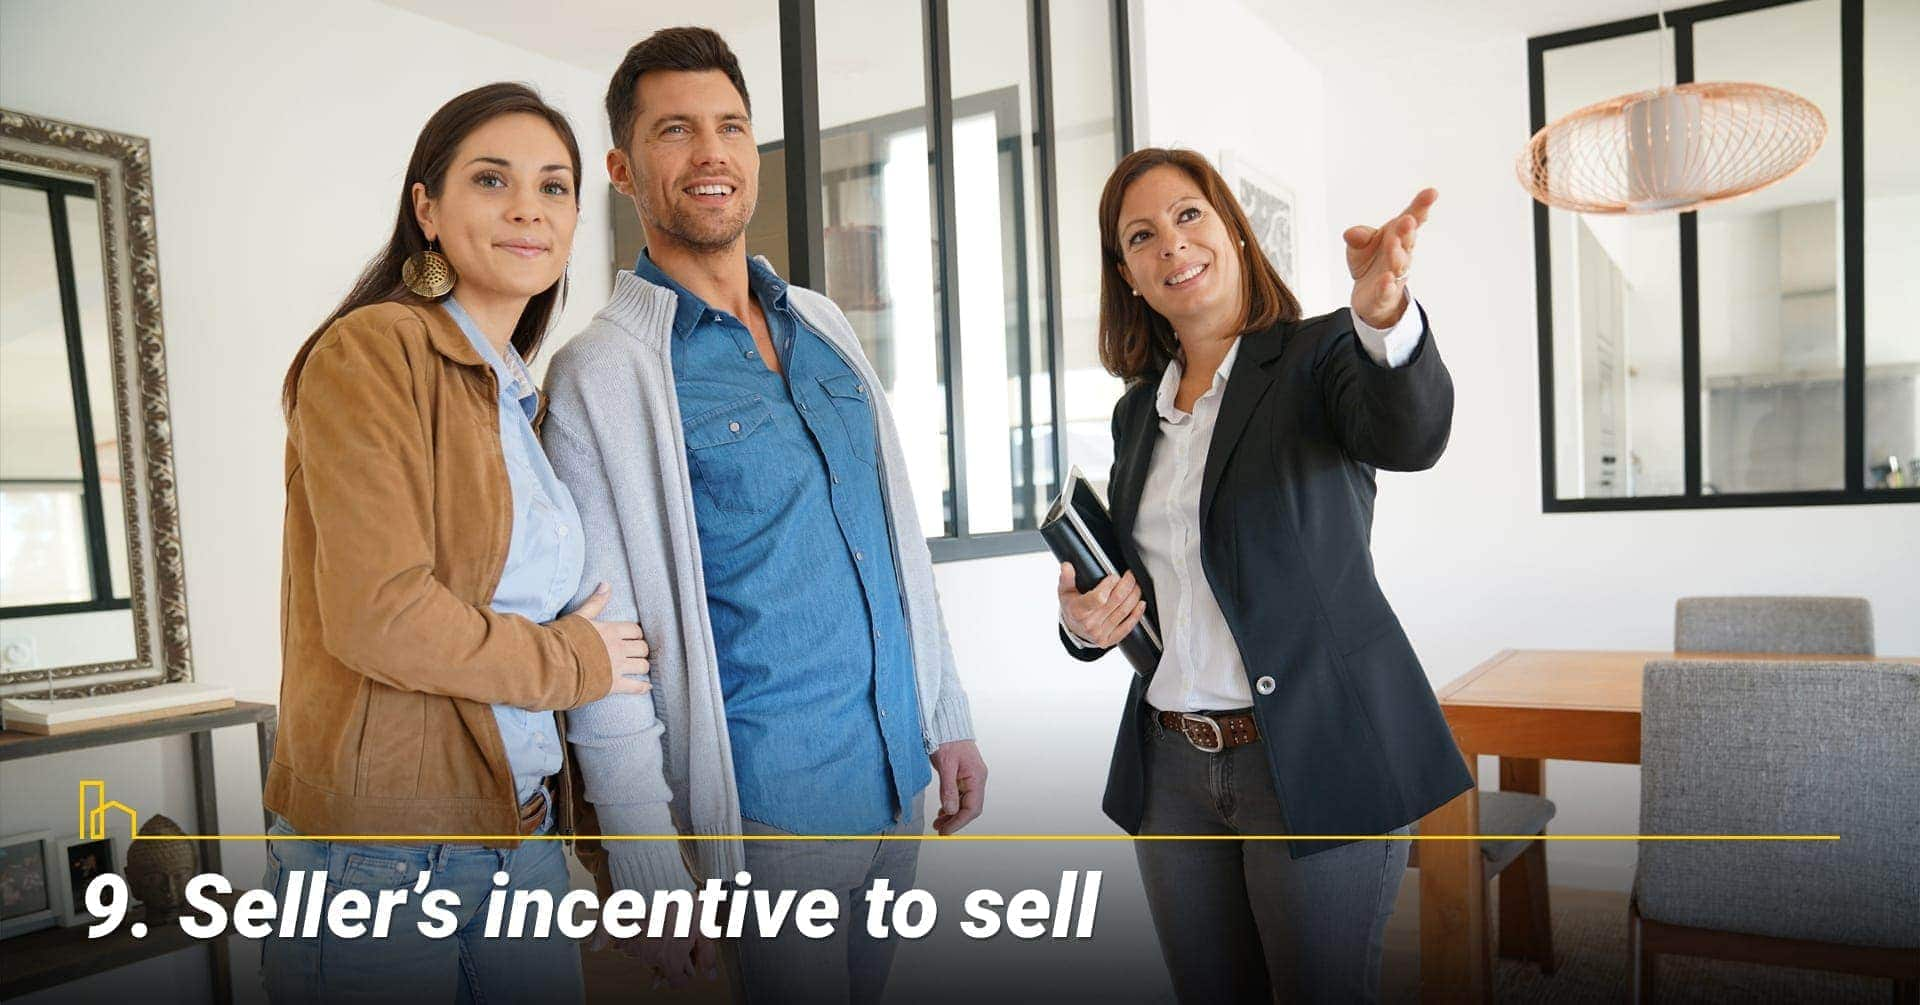 Seller's incentive to sell